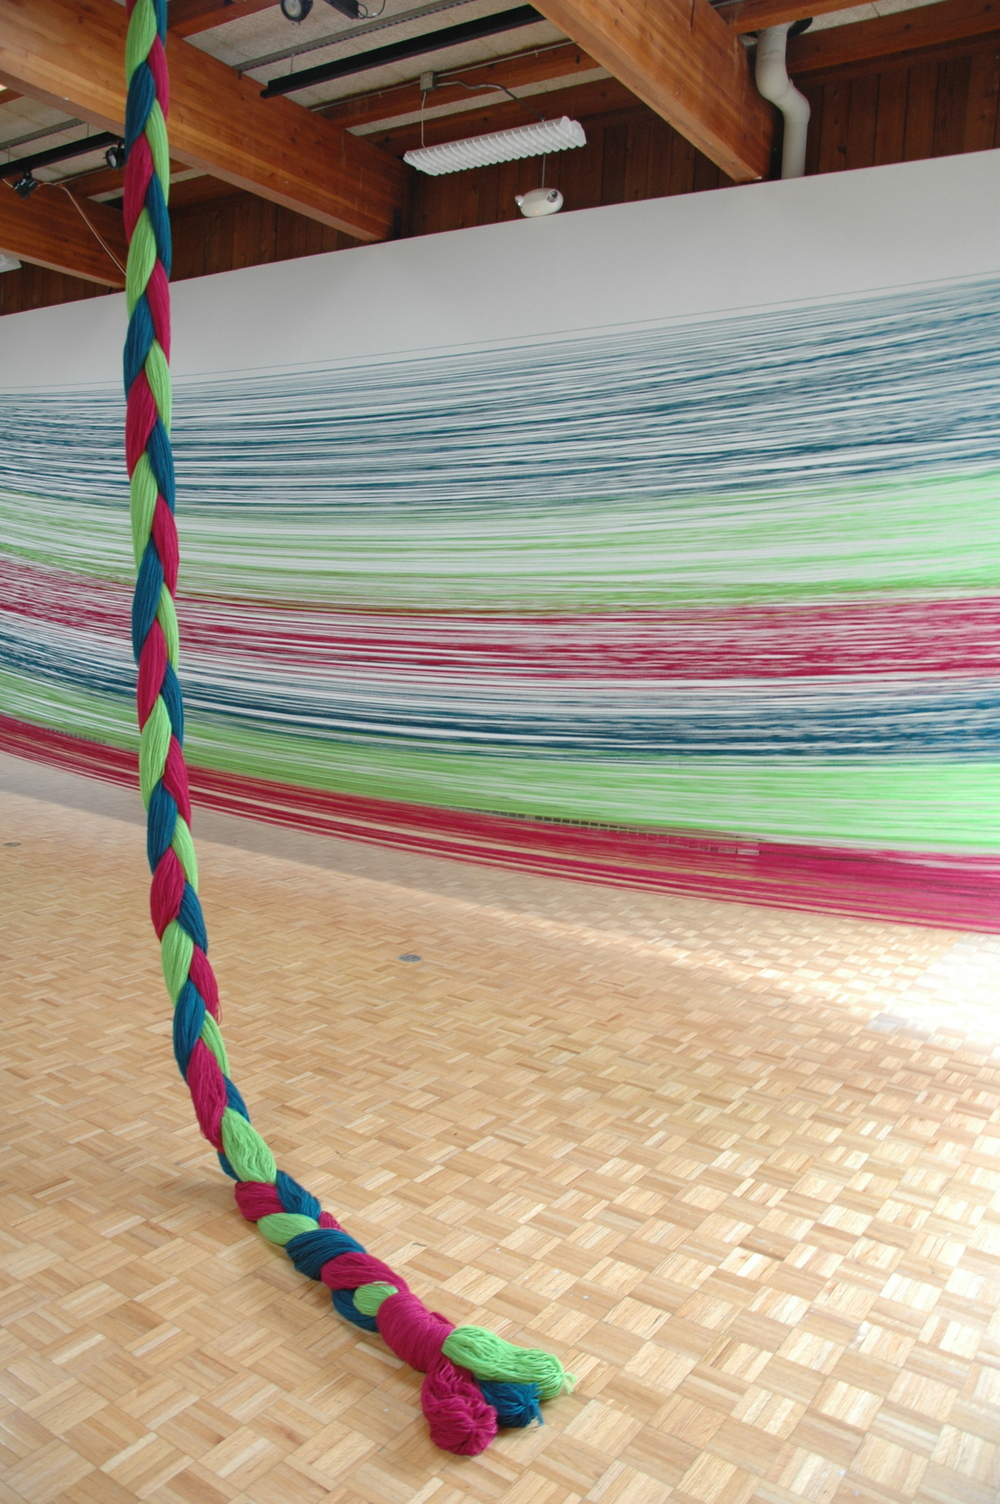 A Work in Progress: TRIM (Installation at Usdan Gallery, Bennington College), 2010, Acrylic yarn, 14' x 40' x 80' (Detail)